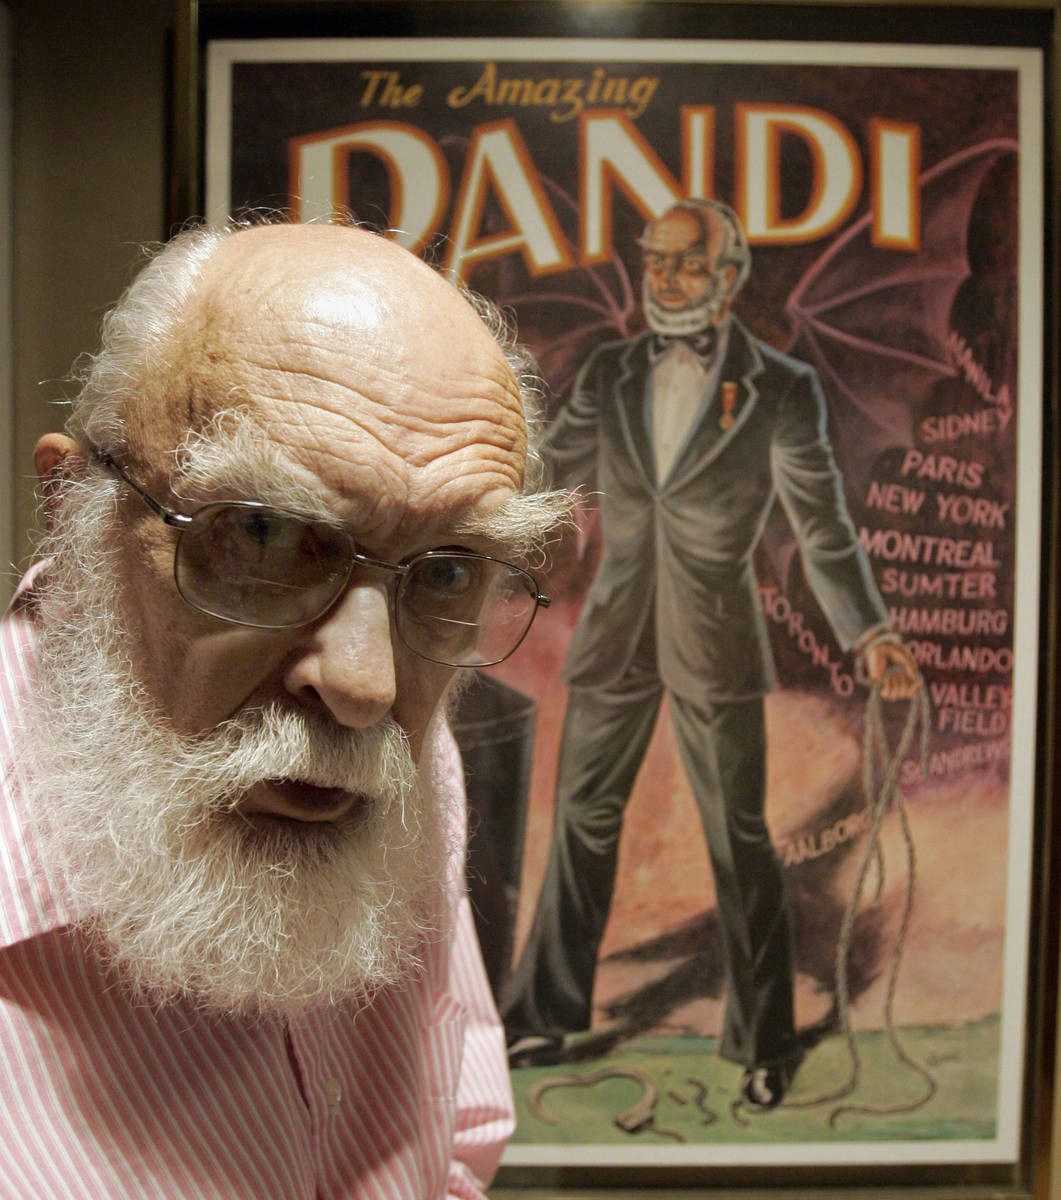 FILE - In this Friday, June 29, 2007, file photo, James Randi is shown in front of a poster at ...